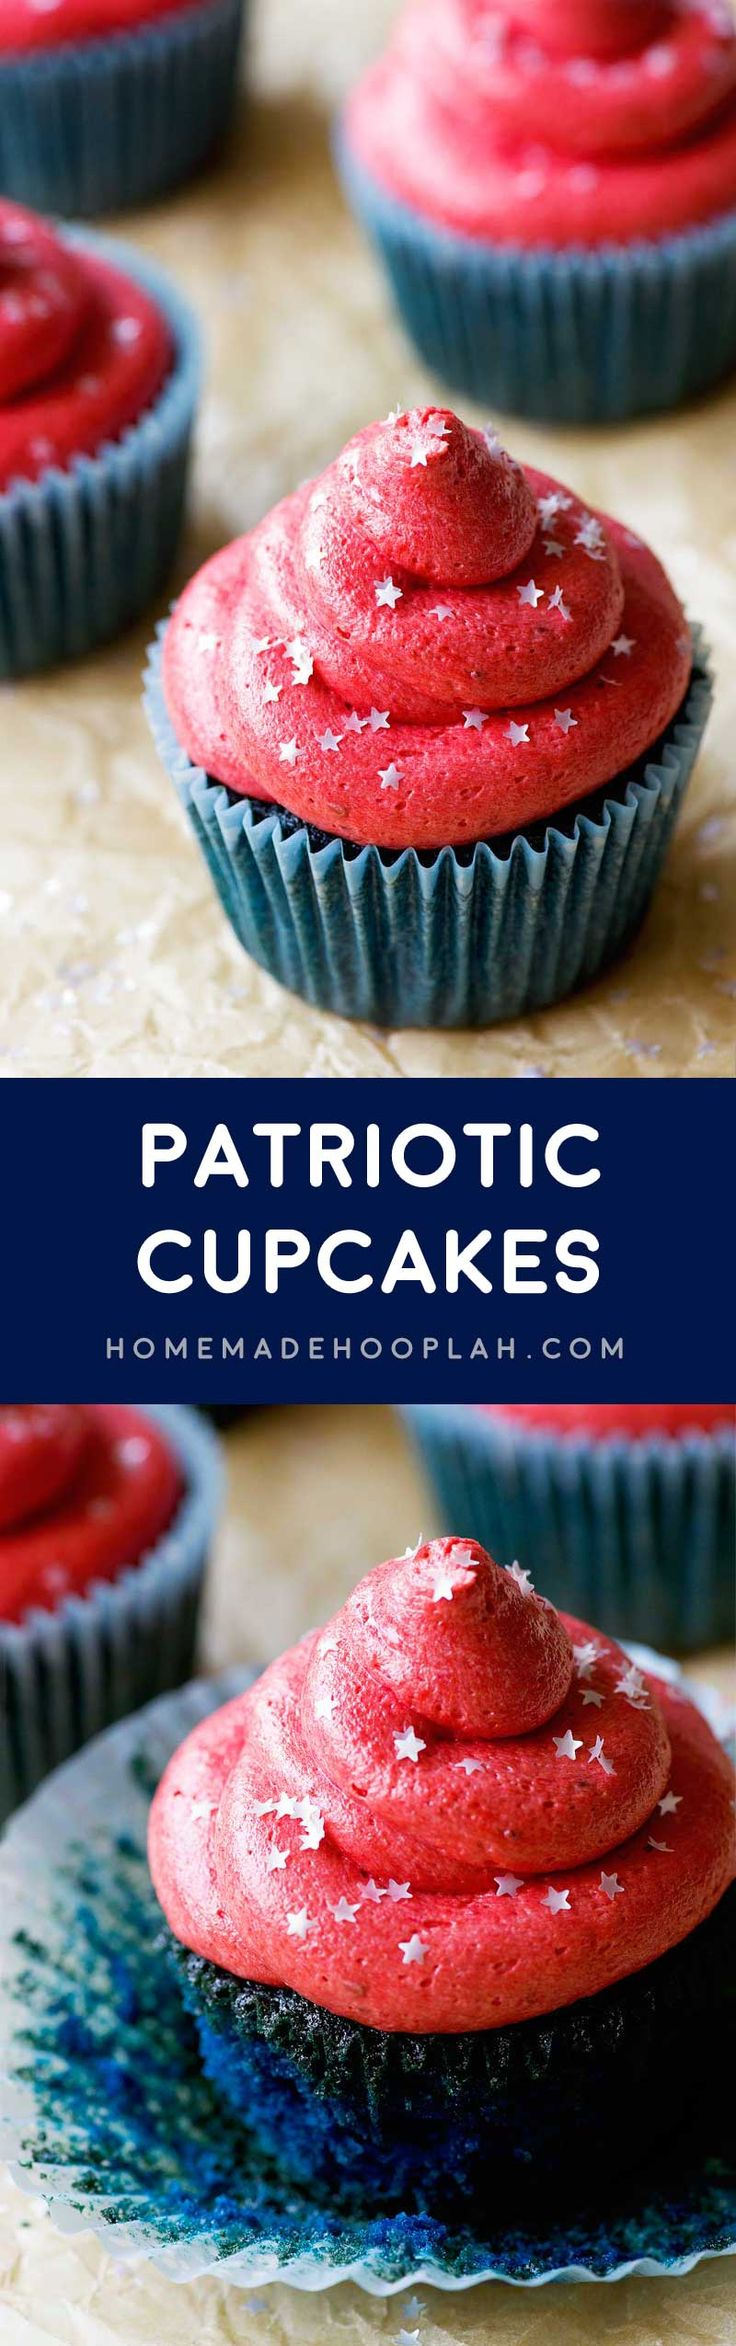 17 Best images about Patriotic Cakes & Cupcakes on Pinterest.